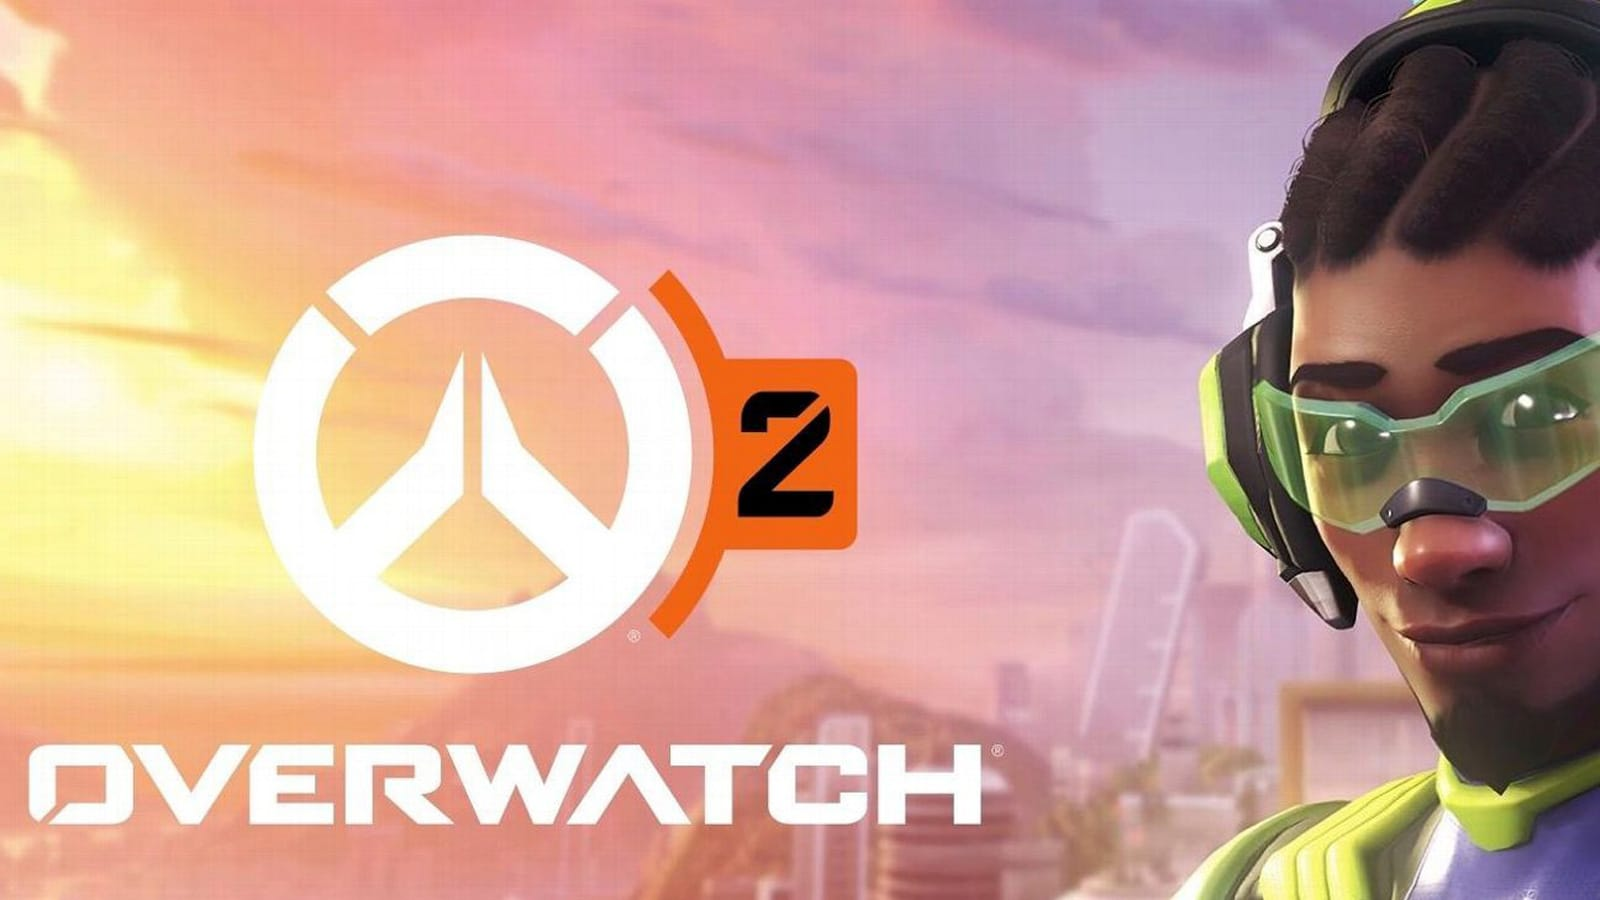 'Overwatch 2' may debut at BlizzCon with a greater focus on story